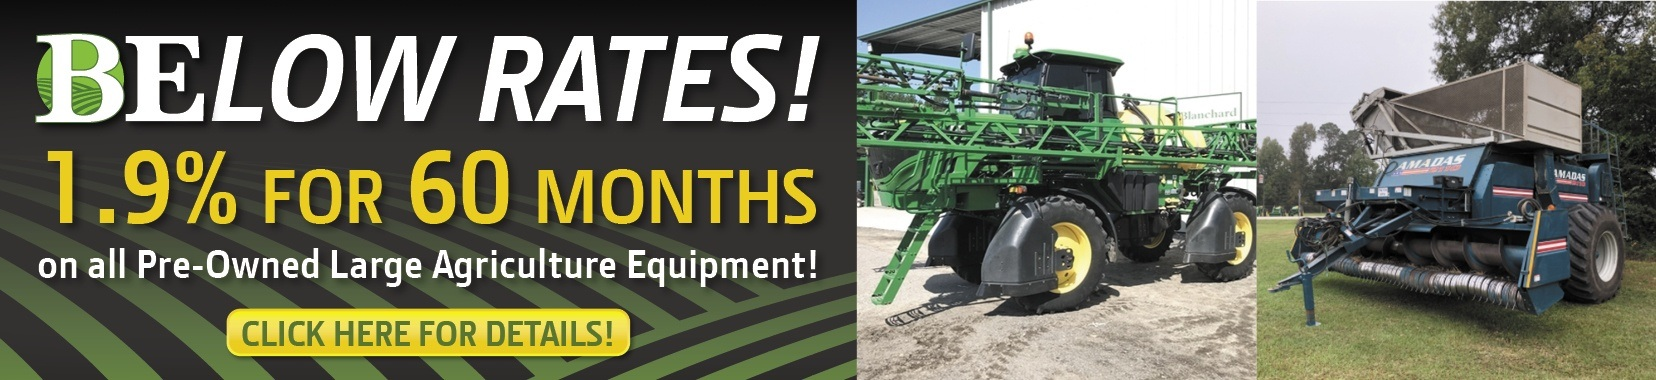 BElow Rates! 1.9% for 60 Months on Pre-Owned Sprayers & Peanut Combines at Blanchard Equipment.